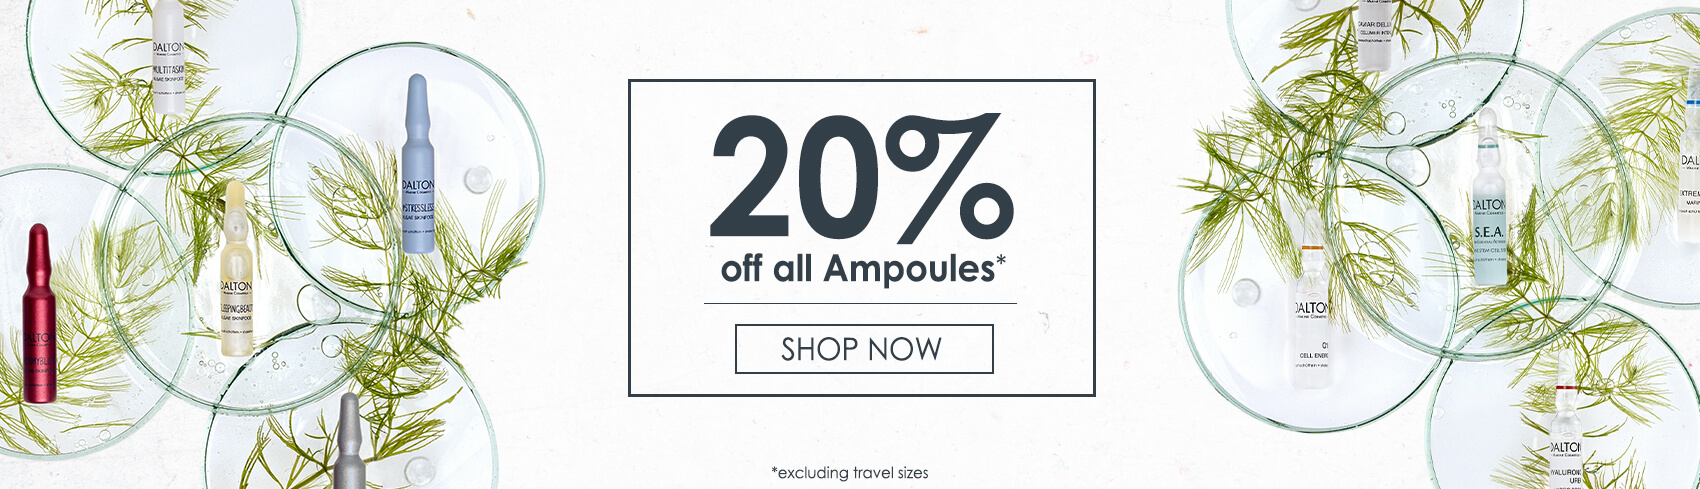 20% off all Ampoules